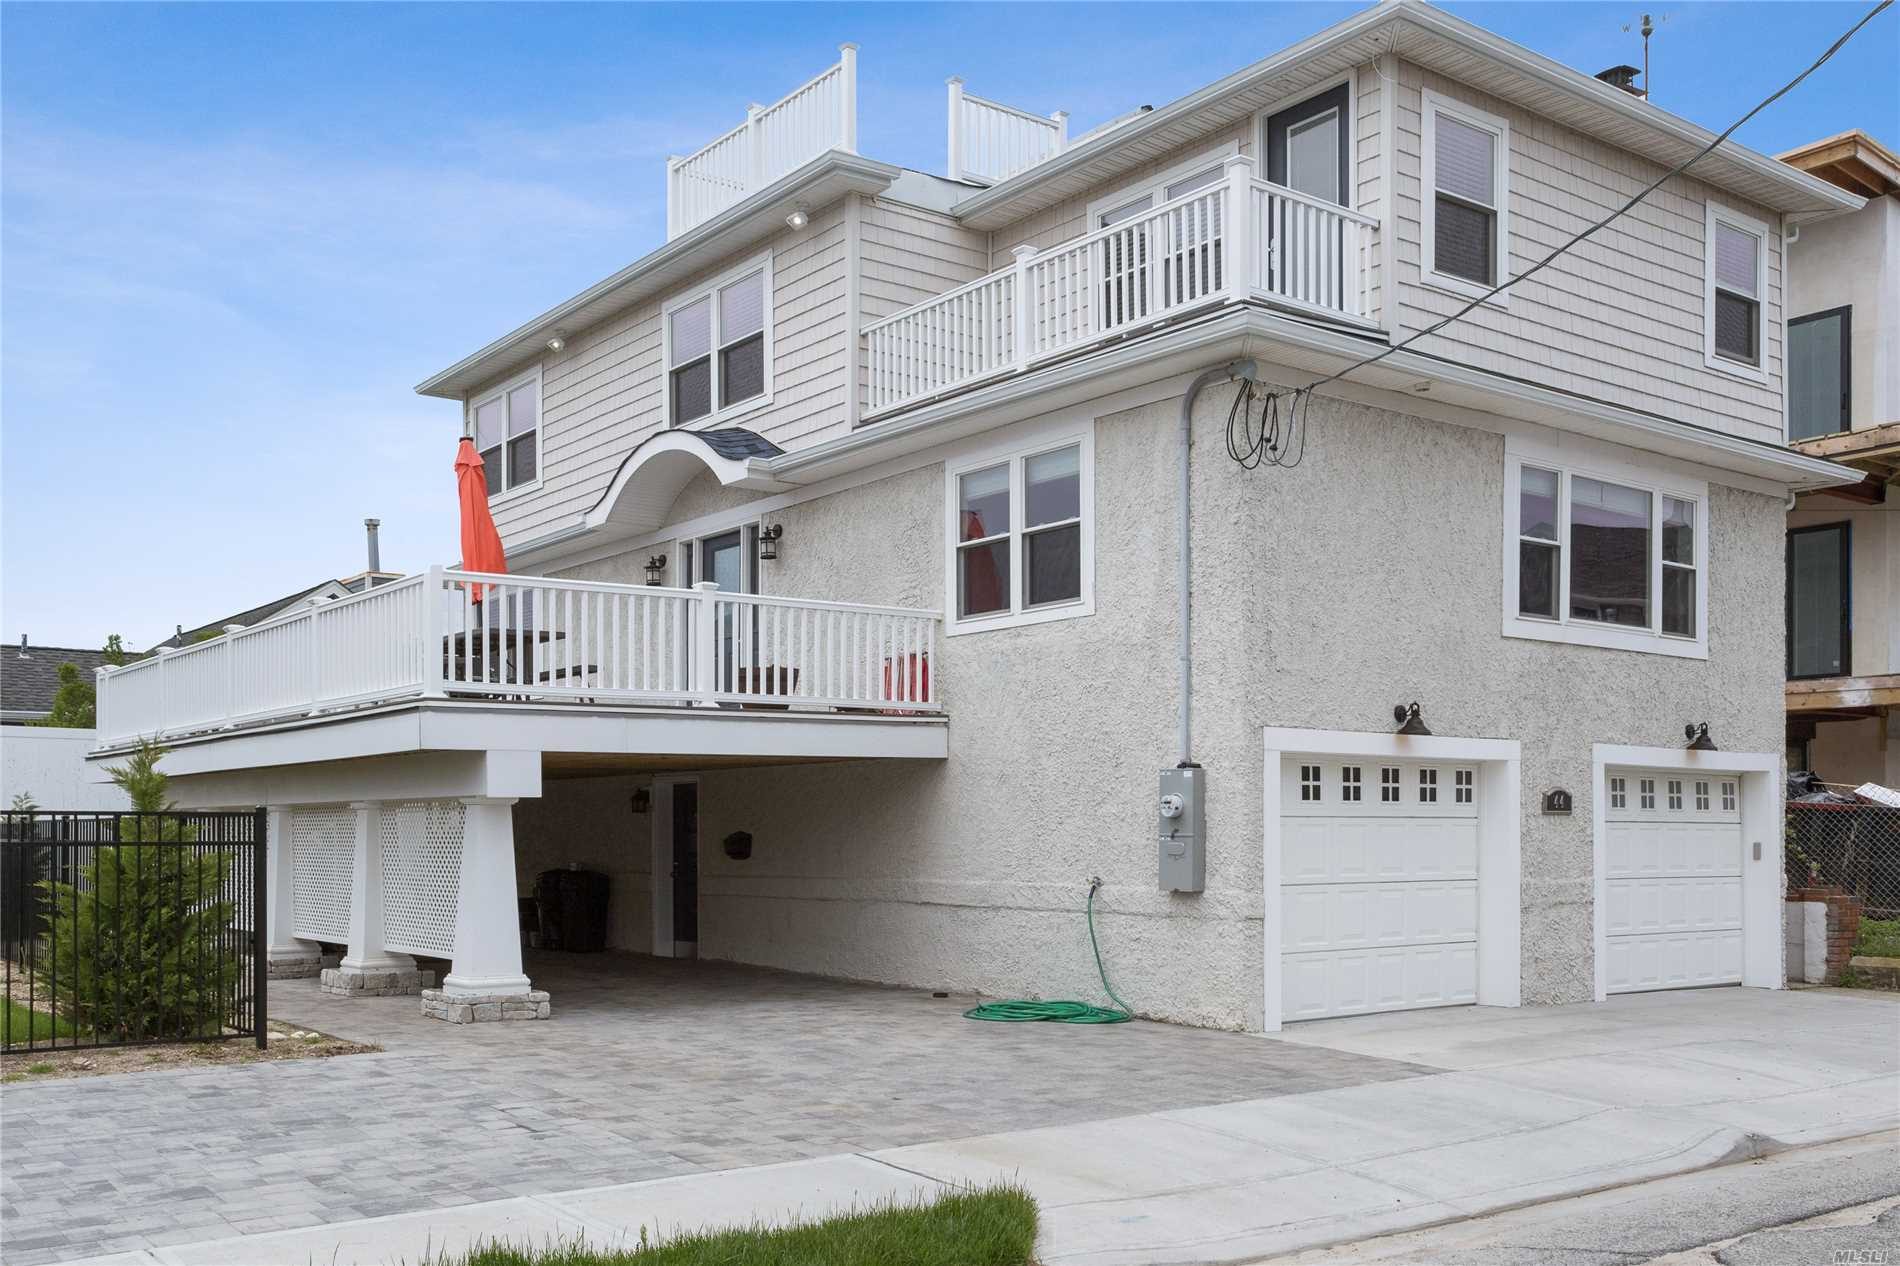 Beautiful, Newly Built Single Family Residence Located In The Quiet, Private Beach Community of Lido Dunes. Completely Brand New Inside and Out! Ocean Views From The Side Deck, Very Large Side Yard Open To Tons Of Sunlight! Come Enjoy The Summer Hamptons Style Without The Commute!